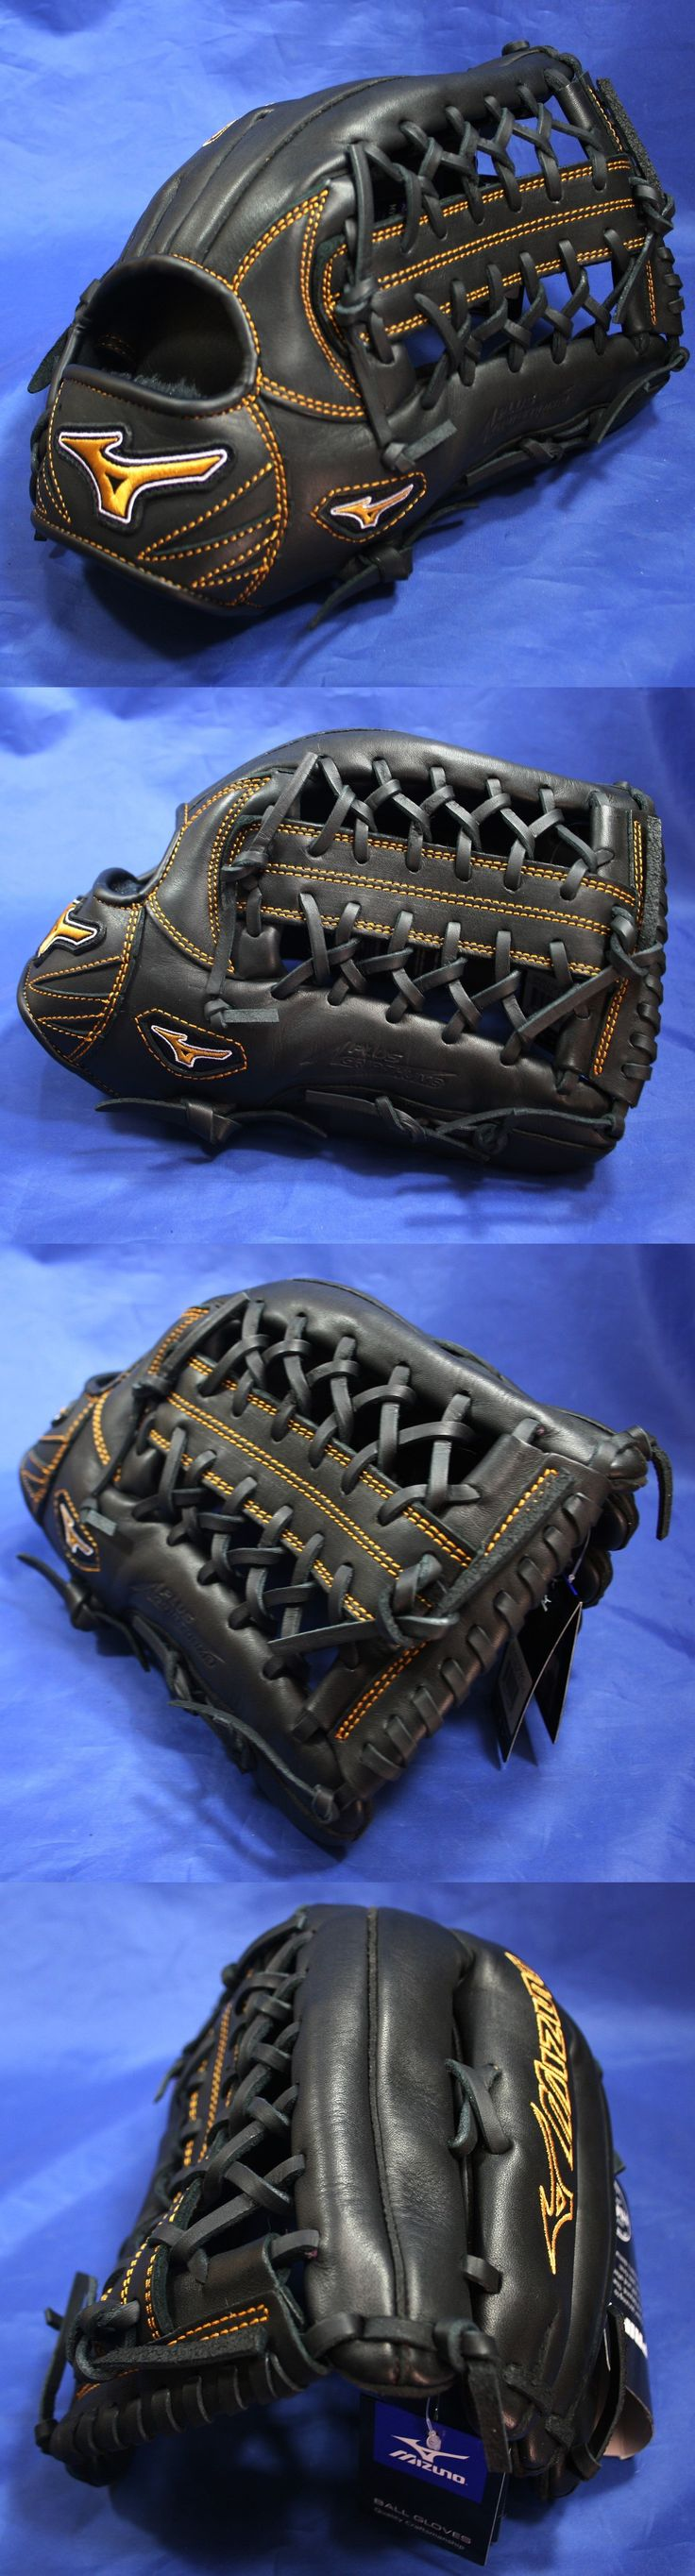 Gloves and Mitts 16030: Mizuno Mvp Prime Gmvp1275p2 (12.75 ) Outfield Baseball Glove -> BUY IT NOW ONLY: $84.95 on eBay!